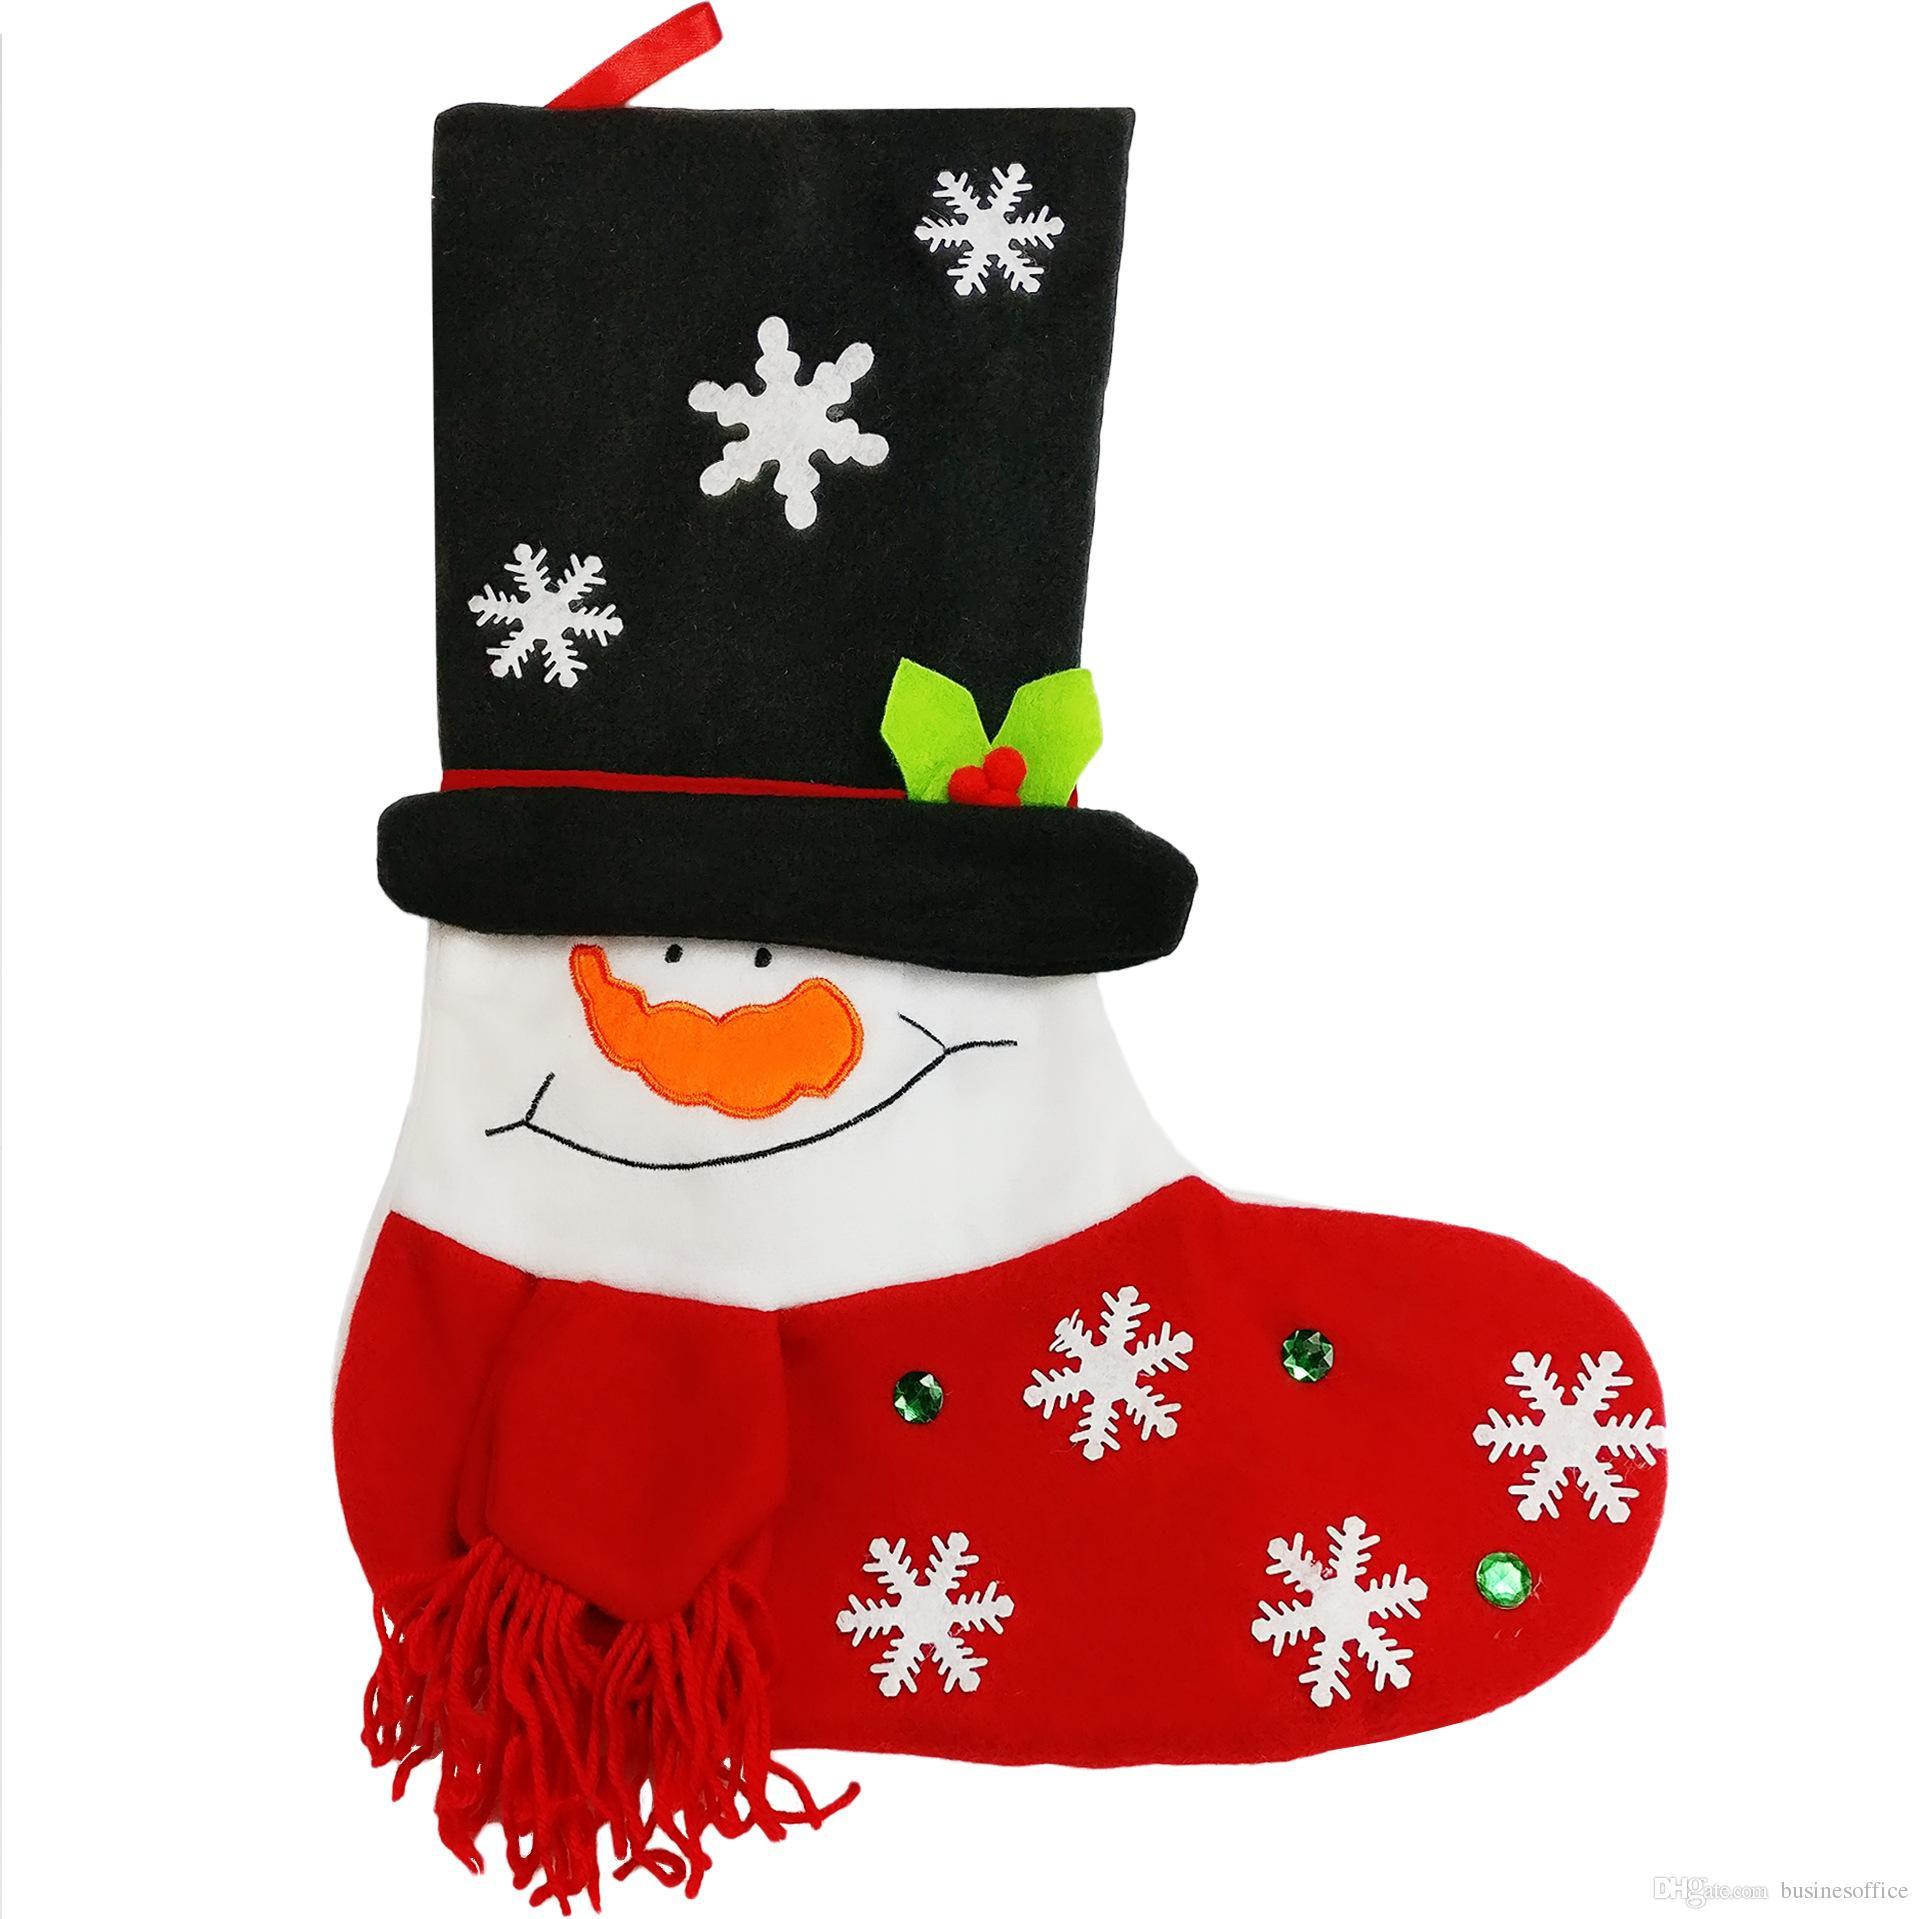 Christmas Decorations Cartoon Socks Gift Bags Factory Outlets